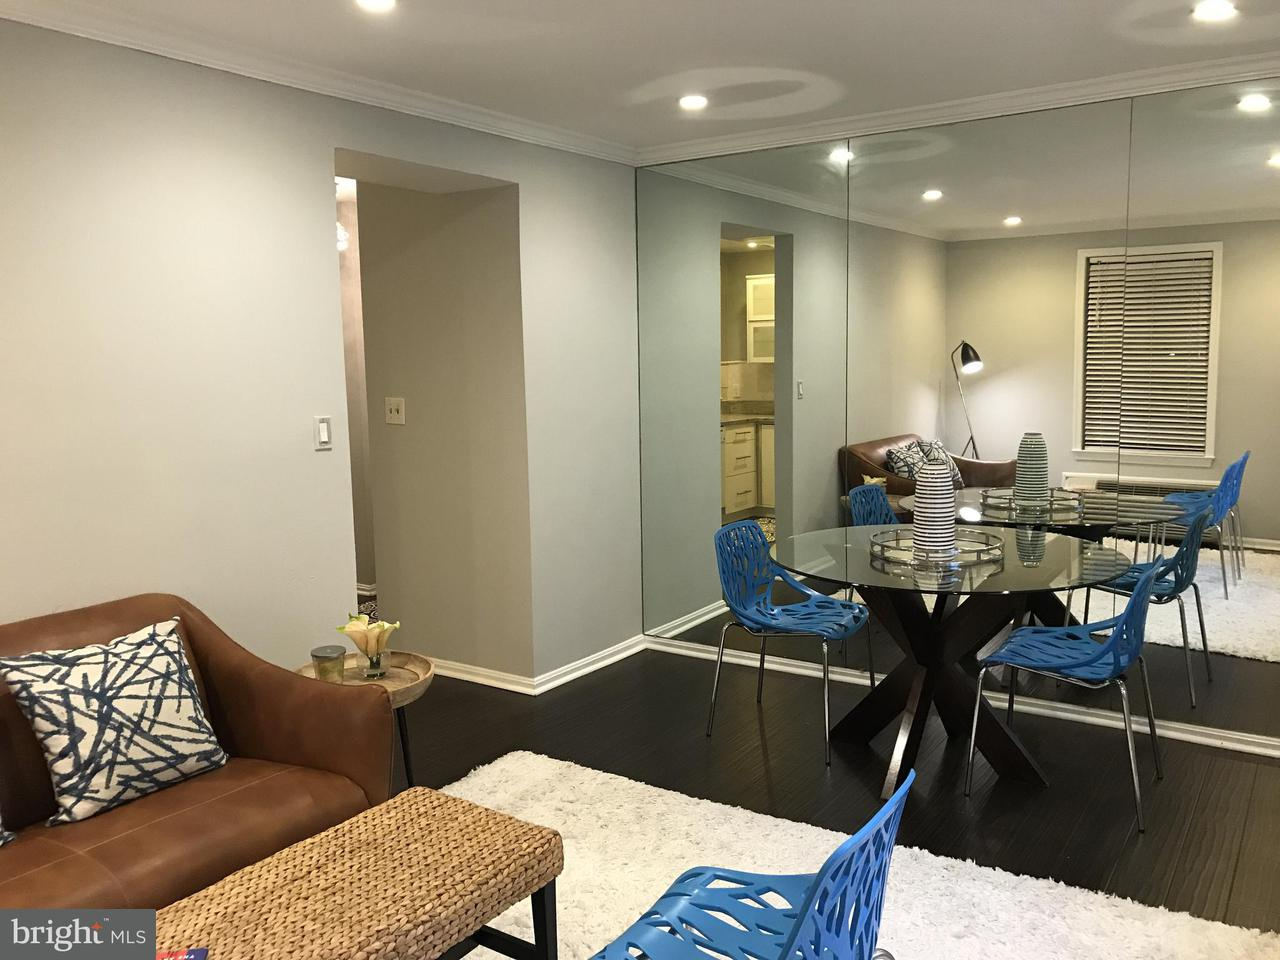 Condominium for Rent at 2310 Ashmead Pl NW #102 Washington, District Of Columbia 20009 United States